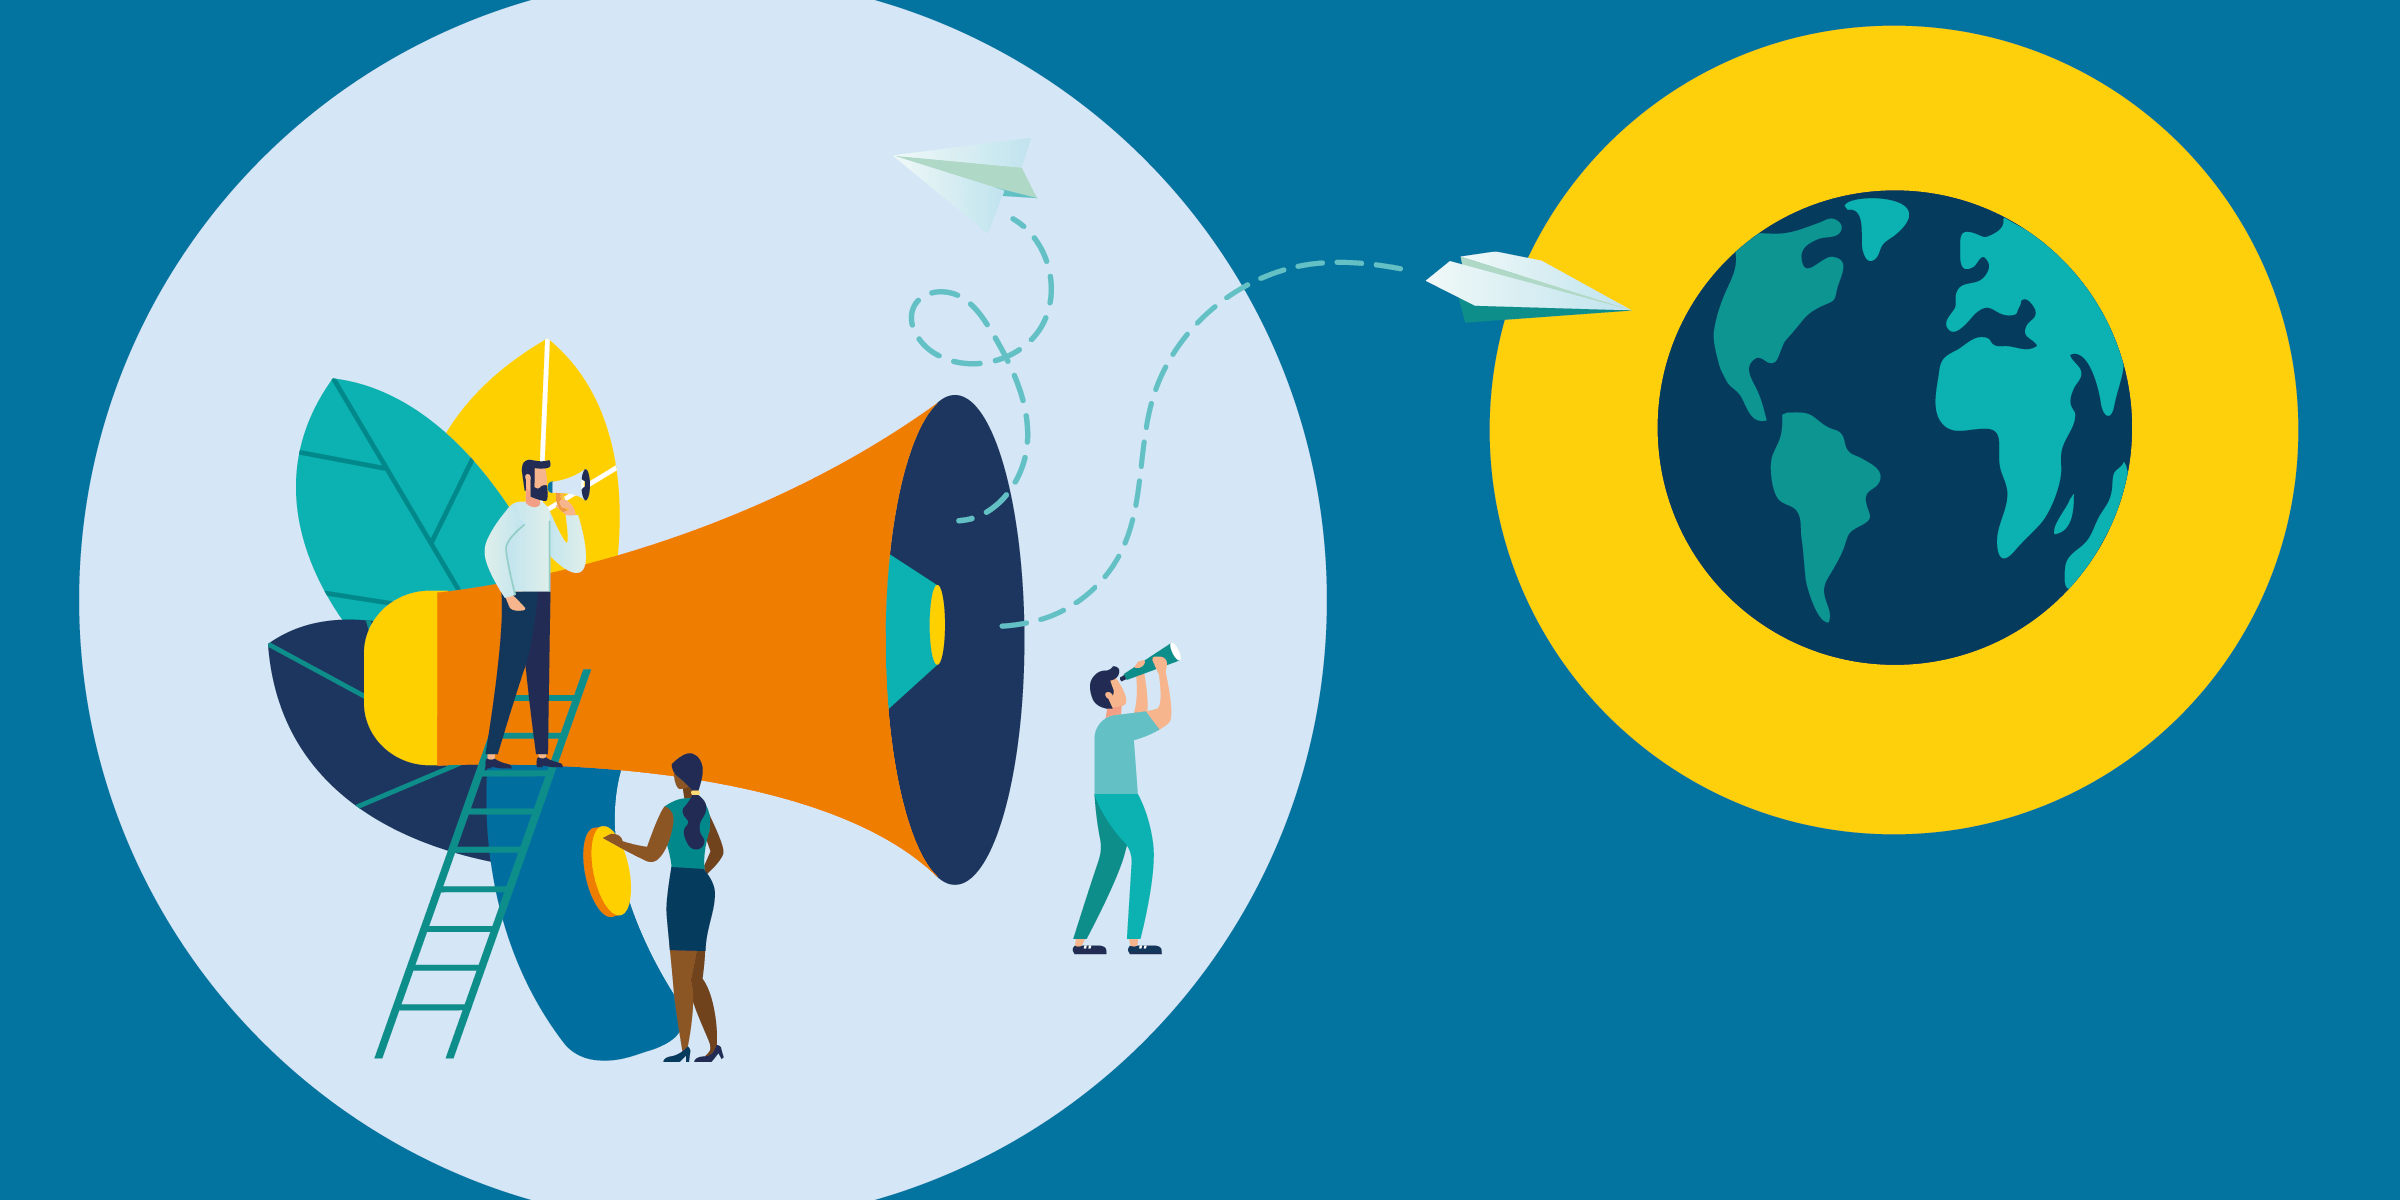 illustration of people assisting paper airplanes come out of a megaphone to fly around the world, representing how nonprofits can harness a google ad grant to increase their marketing efficacy